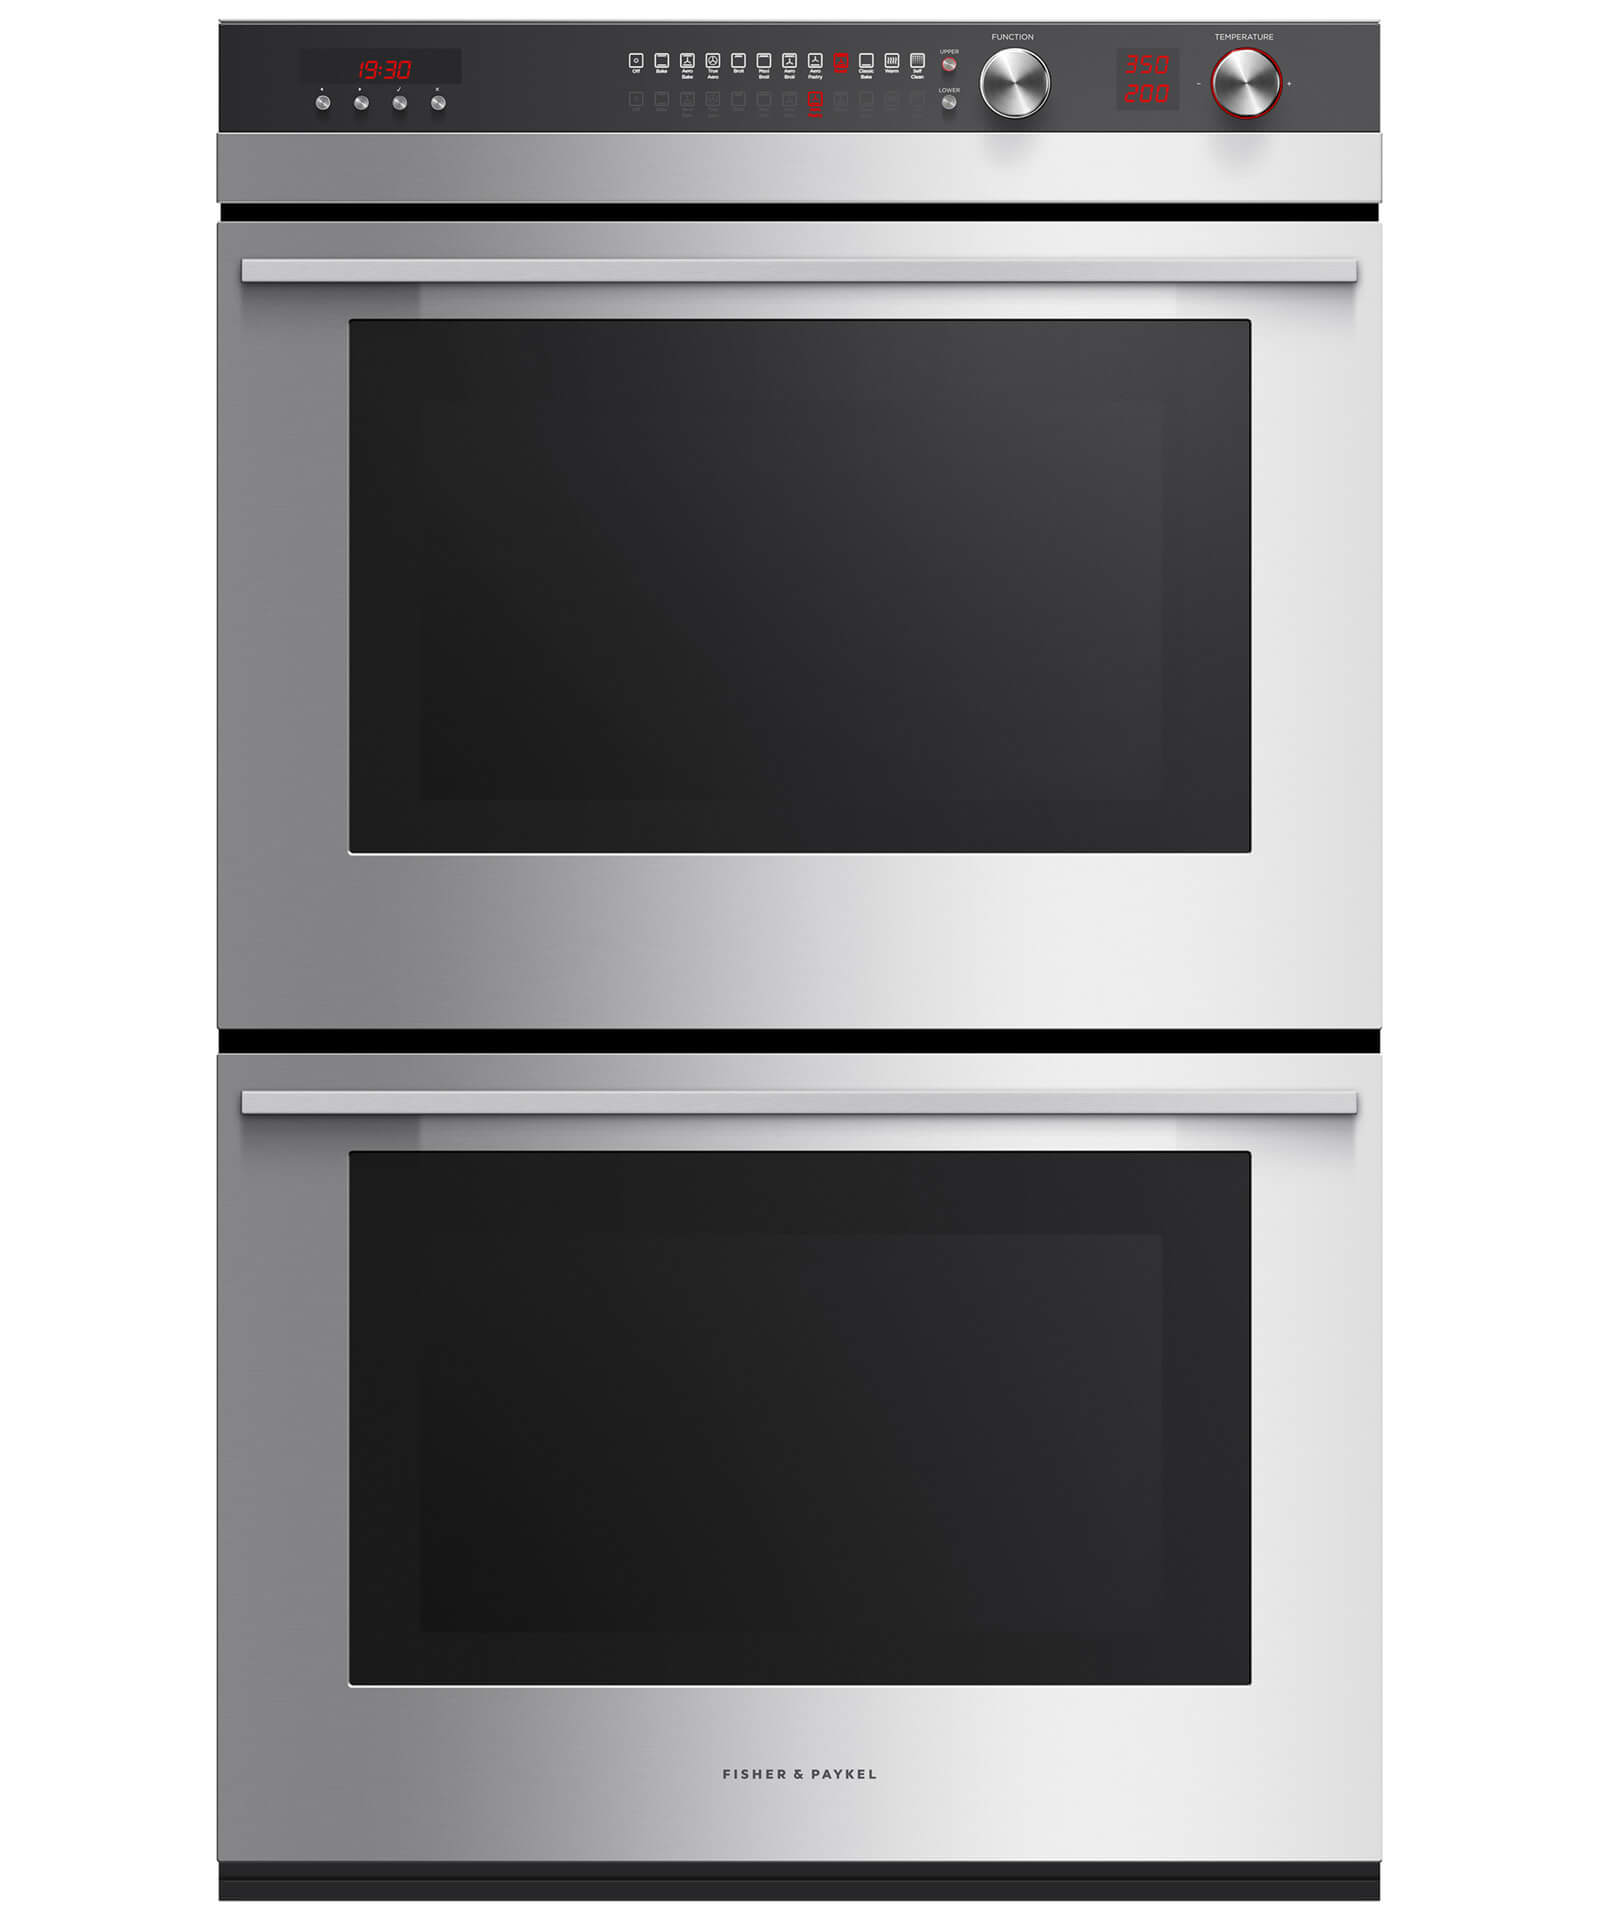 """Fisher and Paykel Double Built-in Oven, 30"""" 8.2 cu ft, 11 Function"""